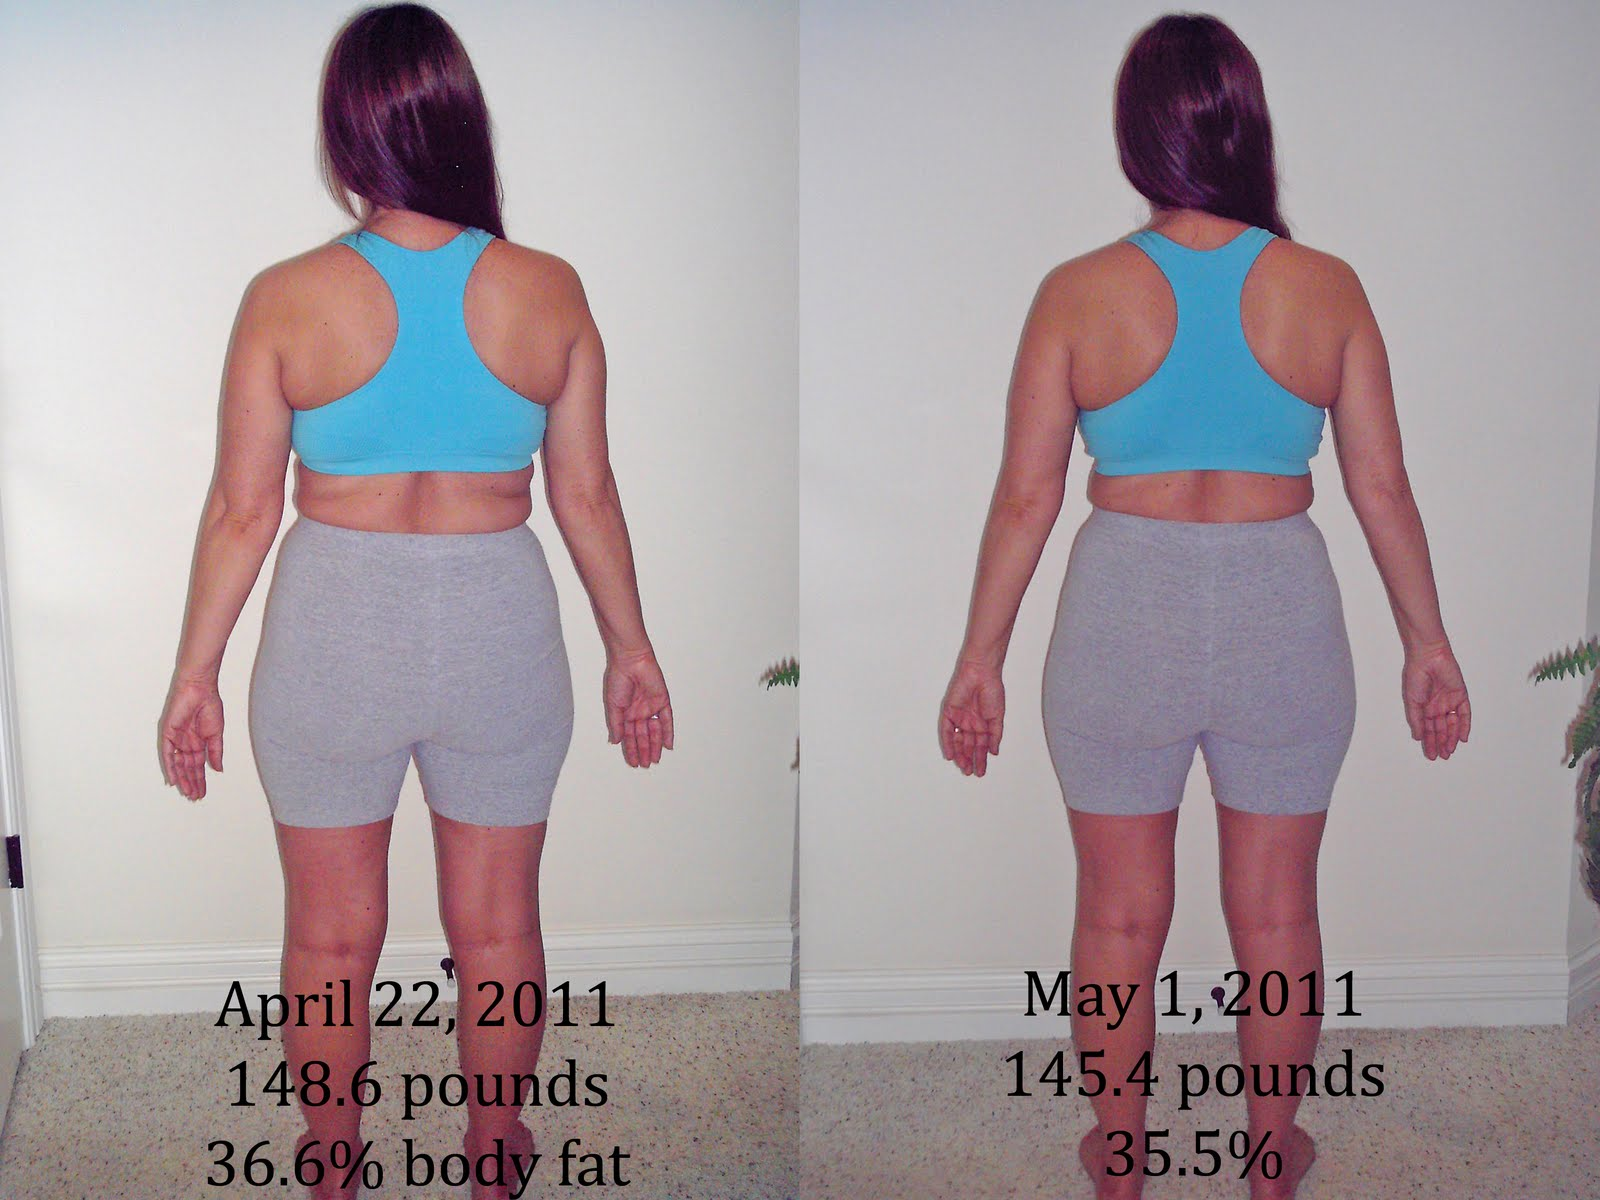 Each day, we had around 500 calories and took the HCG drops three ...